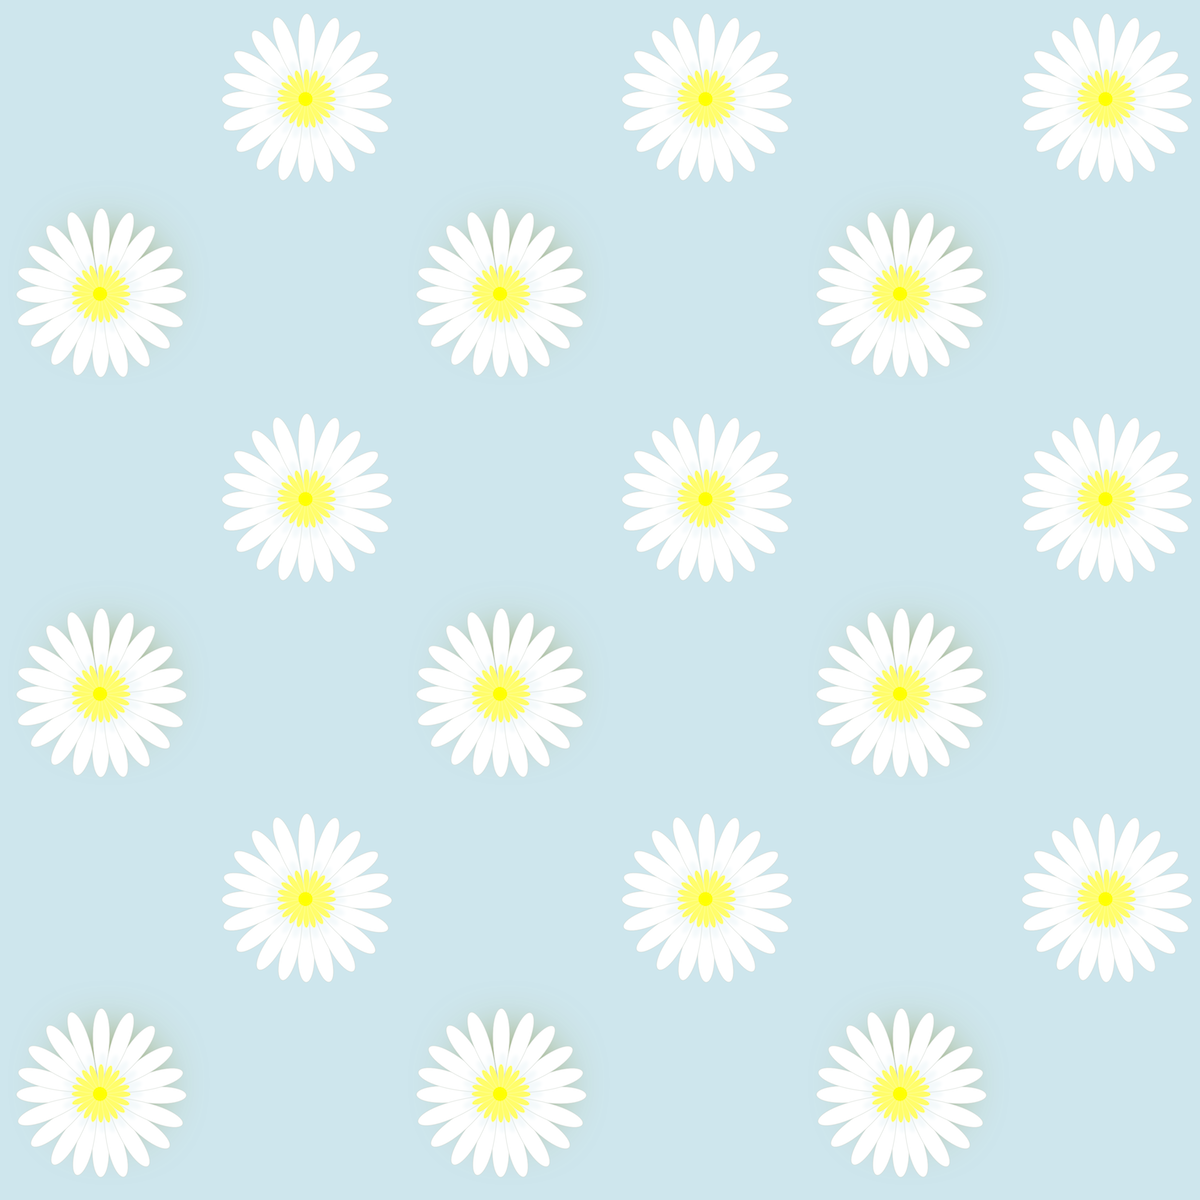 Free digital daisy flower scrapbooking papers - Scrapbook background free printables ...